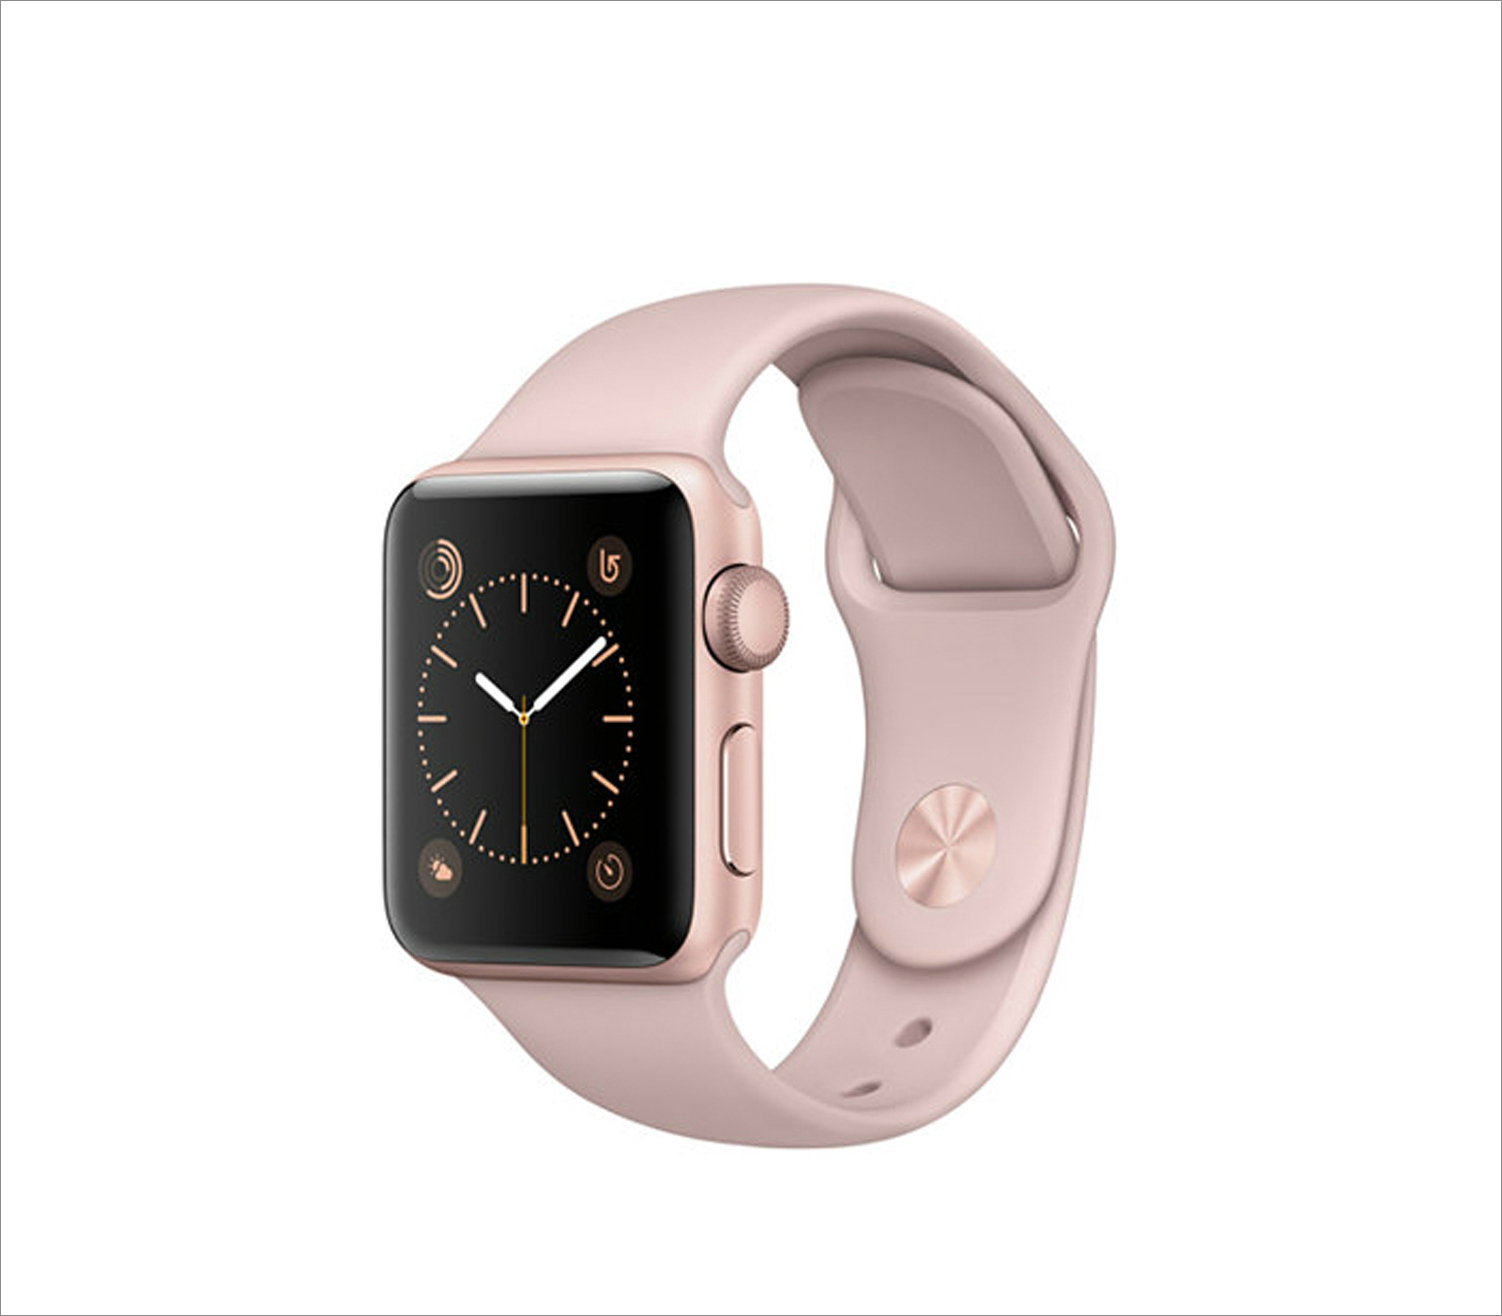 Rose gold tone aluminum case pink sand sport band apple watch series 2